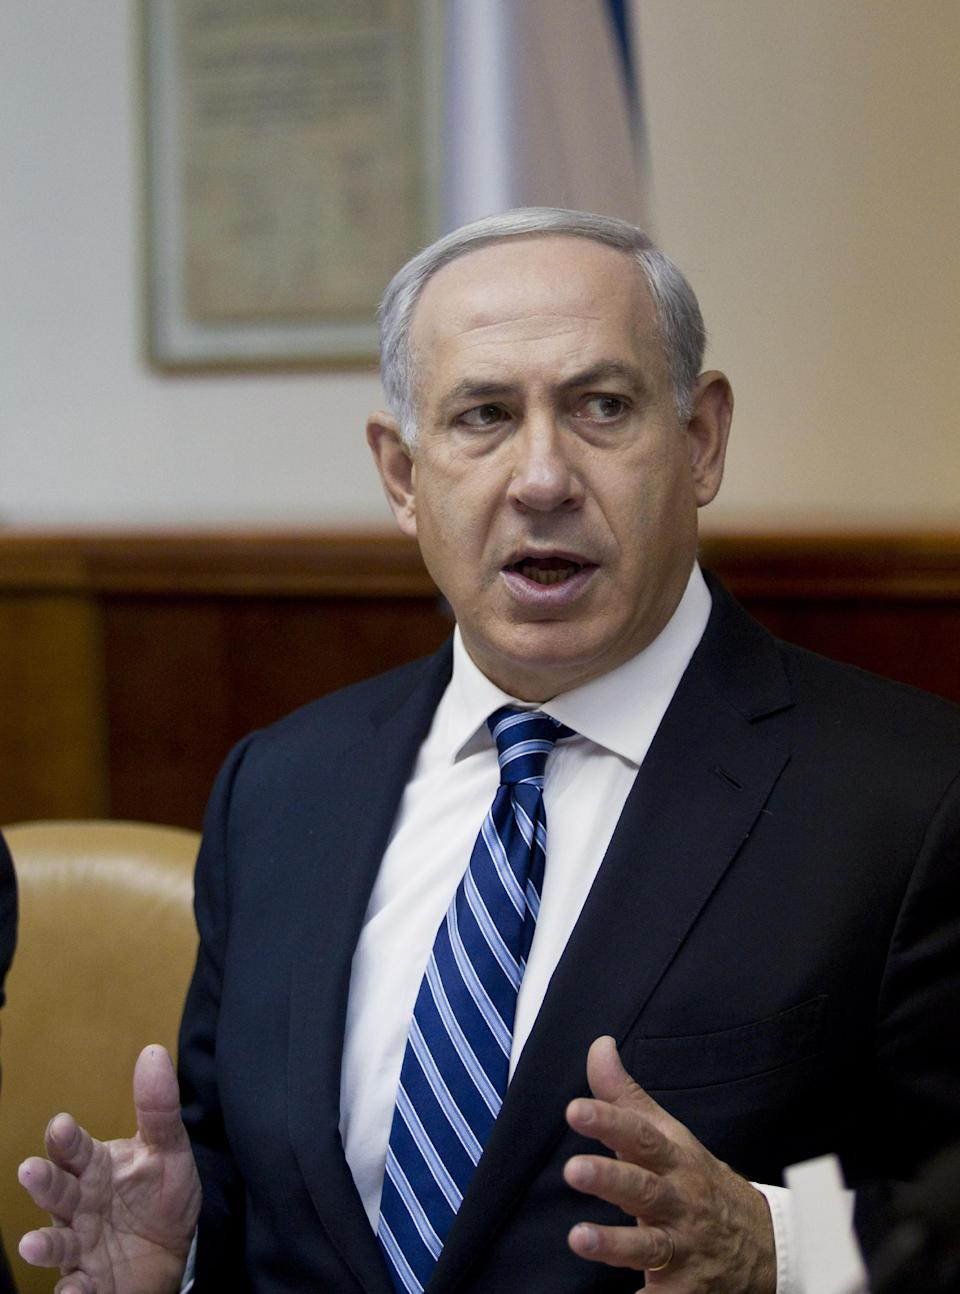 Israeli Prime Minister Benjamin Netanyahu chairs the weekly cabinet meeting in his Jerusalem offices, Sunday, Oct. 14, 2012. Israel's Cabinet has announced January 22, 2013 as the date for parliamentary elections, with Prime Minister Benjamin Netanyahu leading in the polls.(AP Photo/Jim Hollander, Pool)